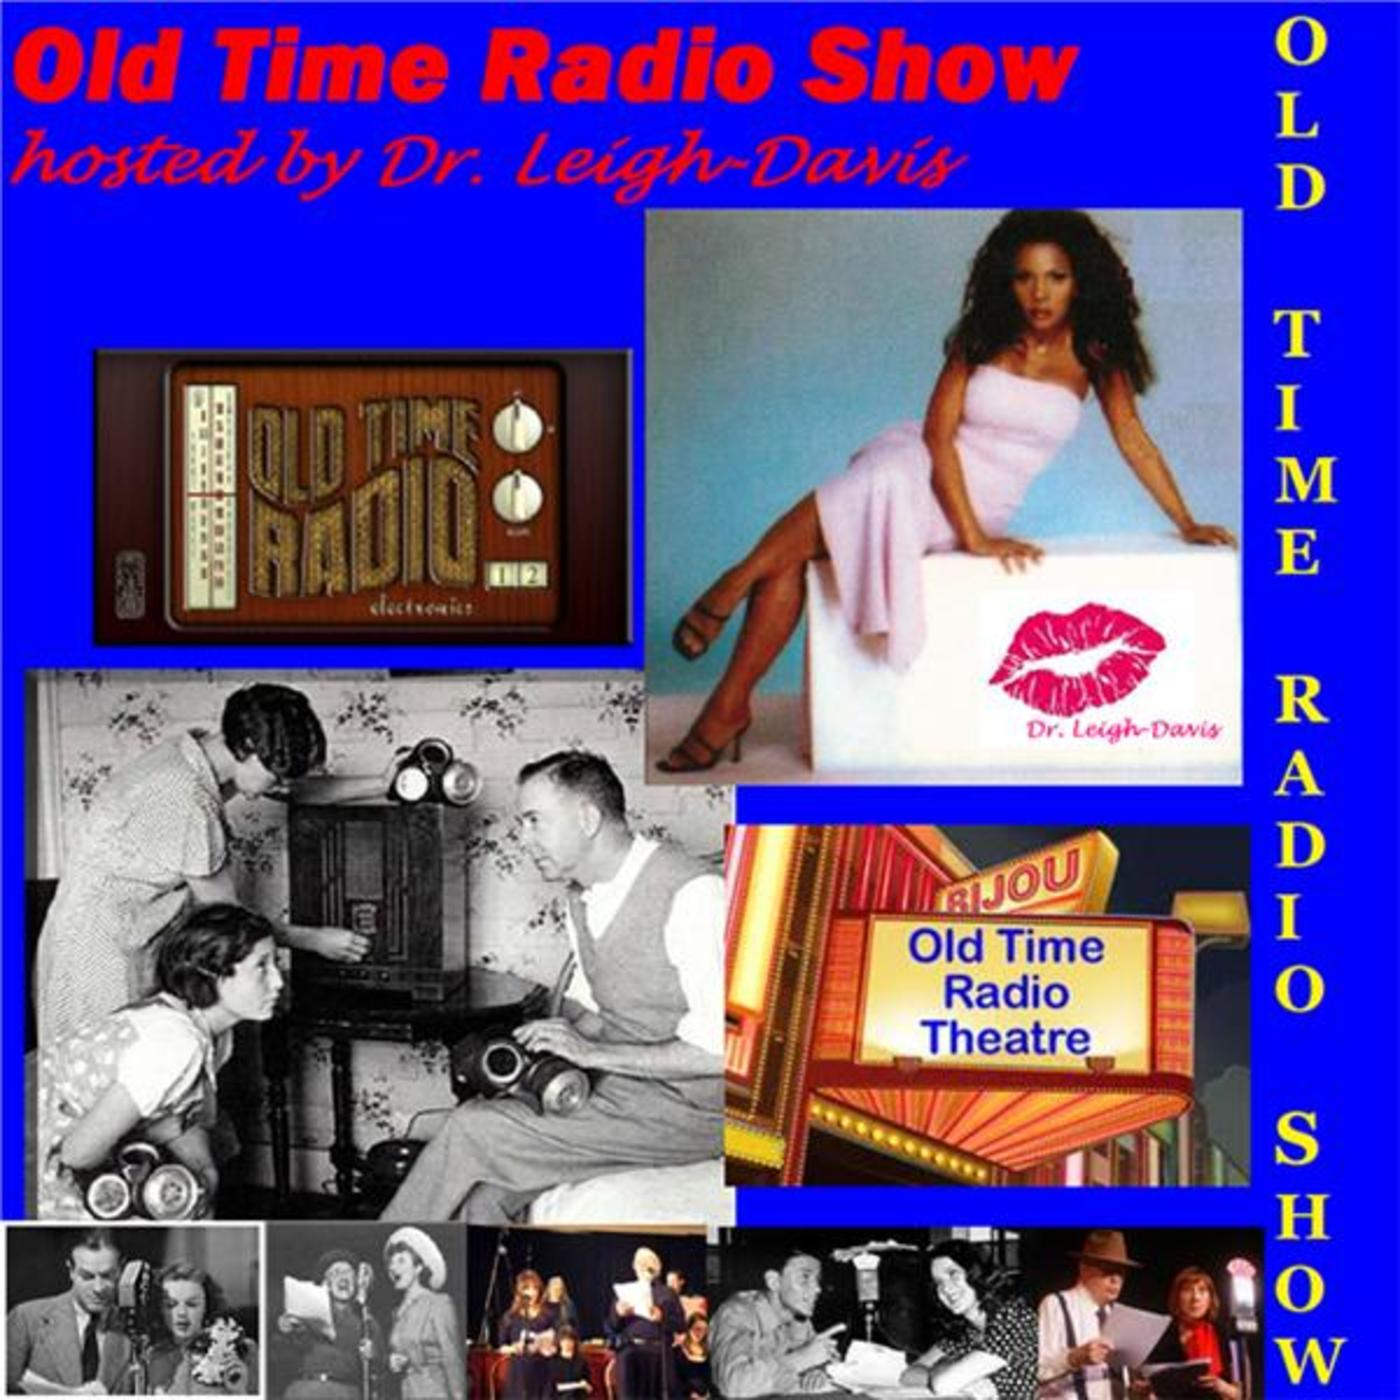 Old Time Radio hosted by Dr. Leigh-Davis